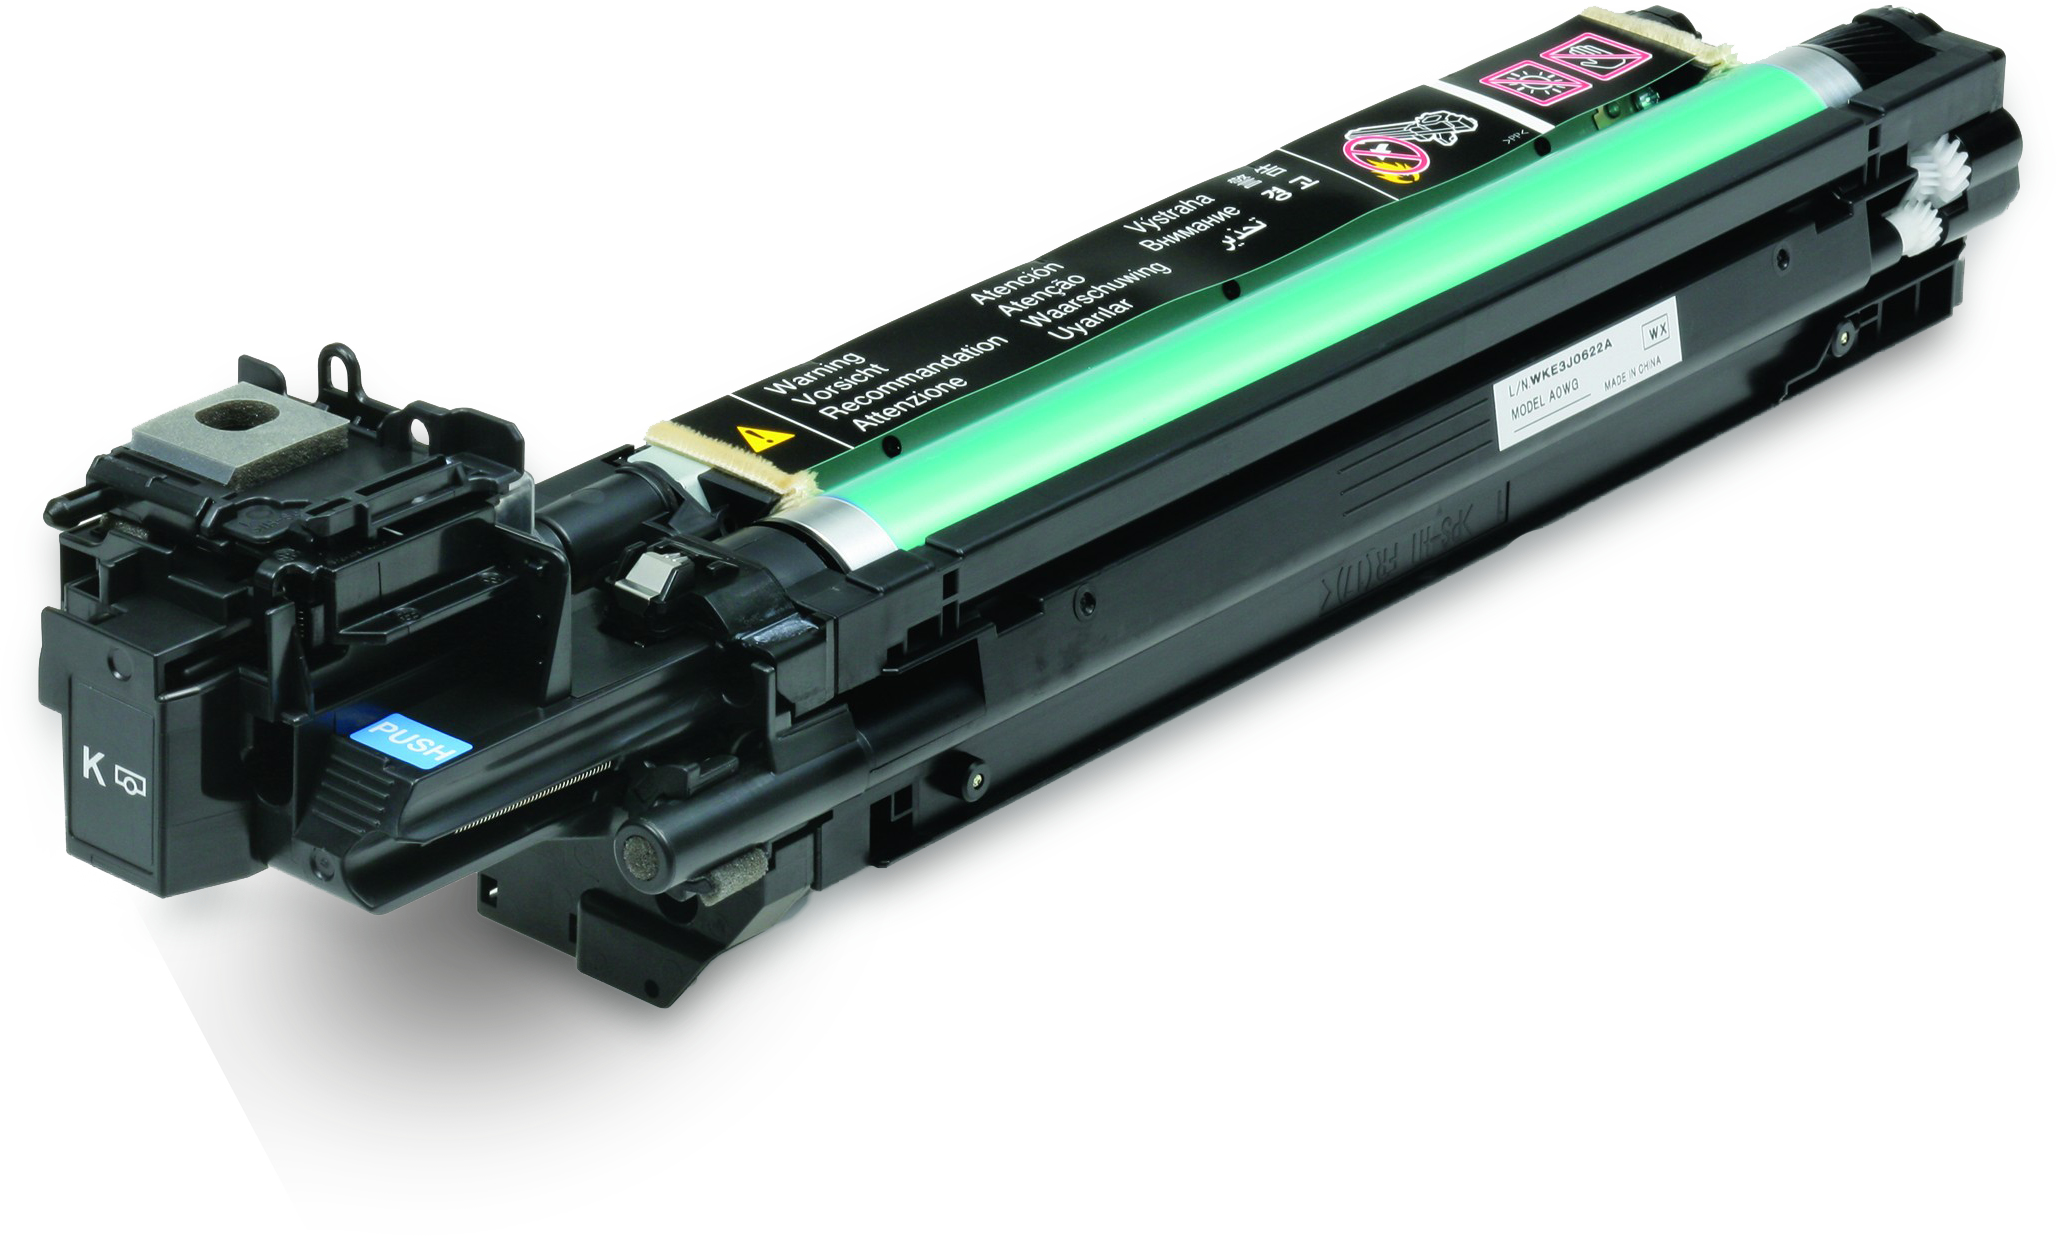 Reman Epson C13S051204 Black Photoconductor C13S051204 - rem01